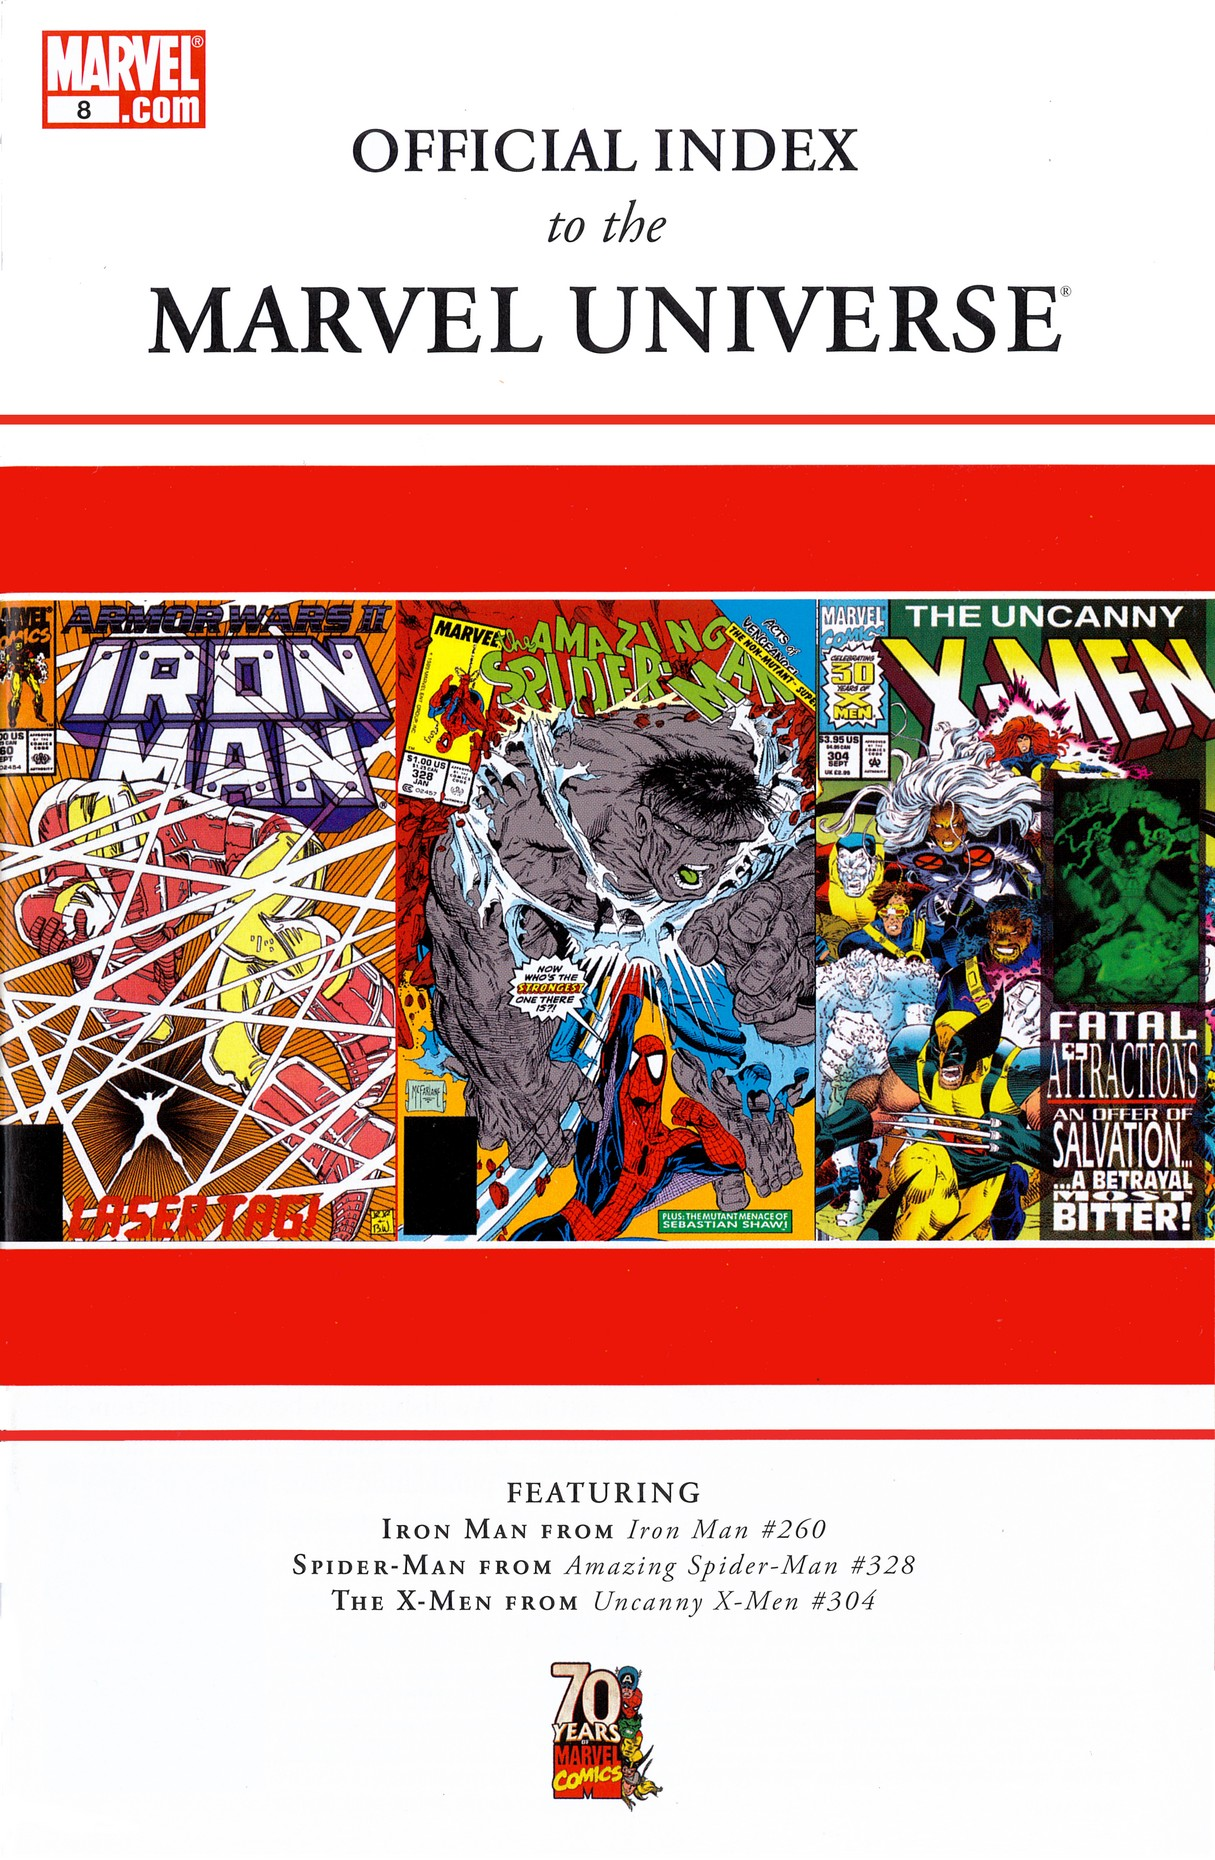 Read online Official Index to the Marvel Universe comic -  Issue #8 - 1